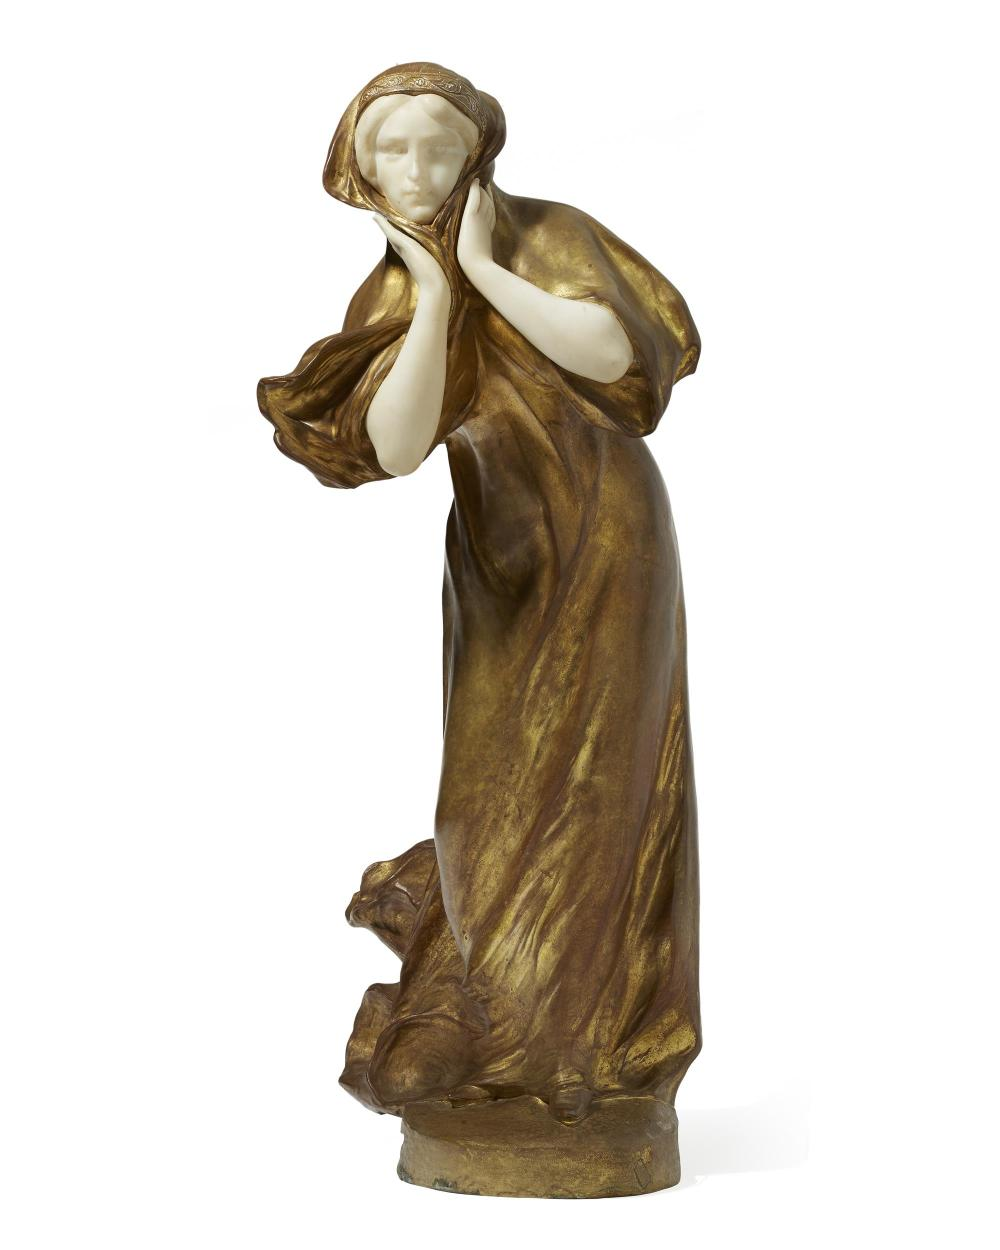 "Affortunato (Fortunato) Gory, (1895-1925 Italian/French), Walking woman, Gilt-bronze and alabaster, 26"" H x 11.75"" W x 9.5"" D"